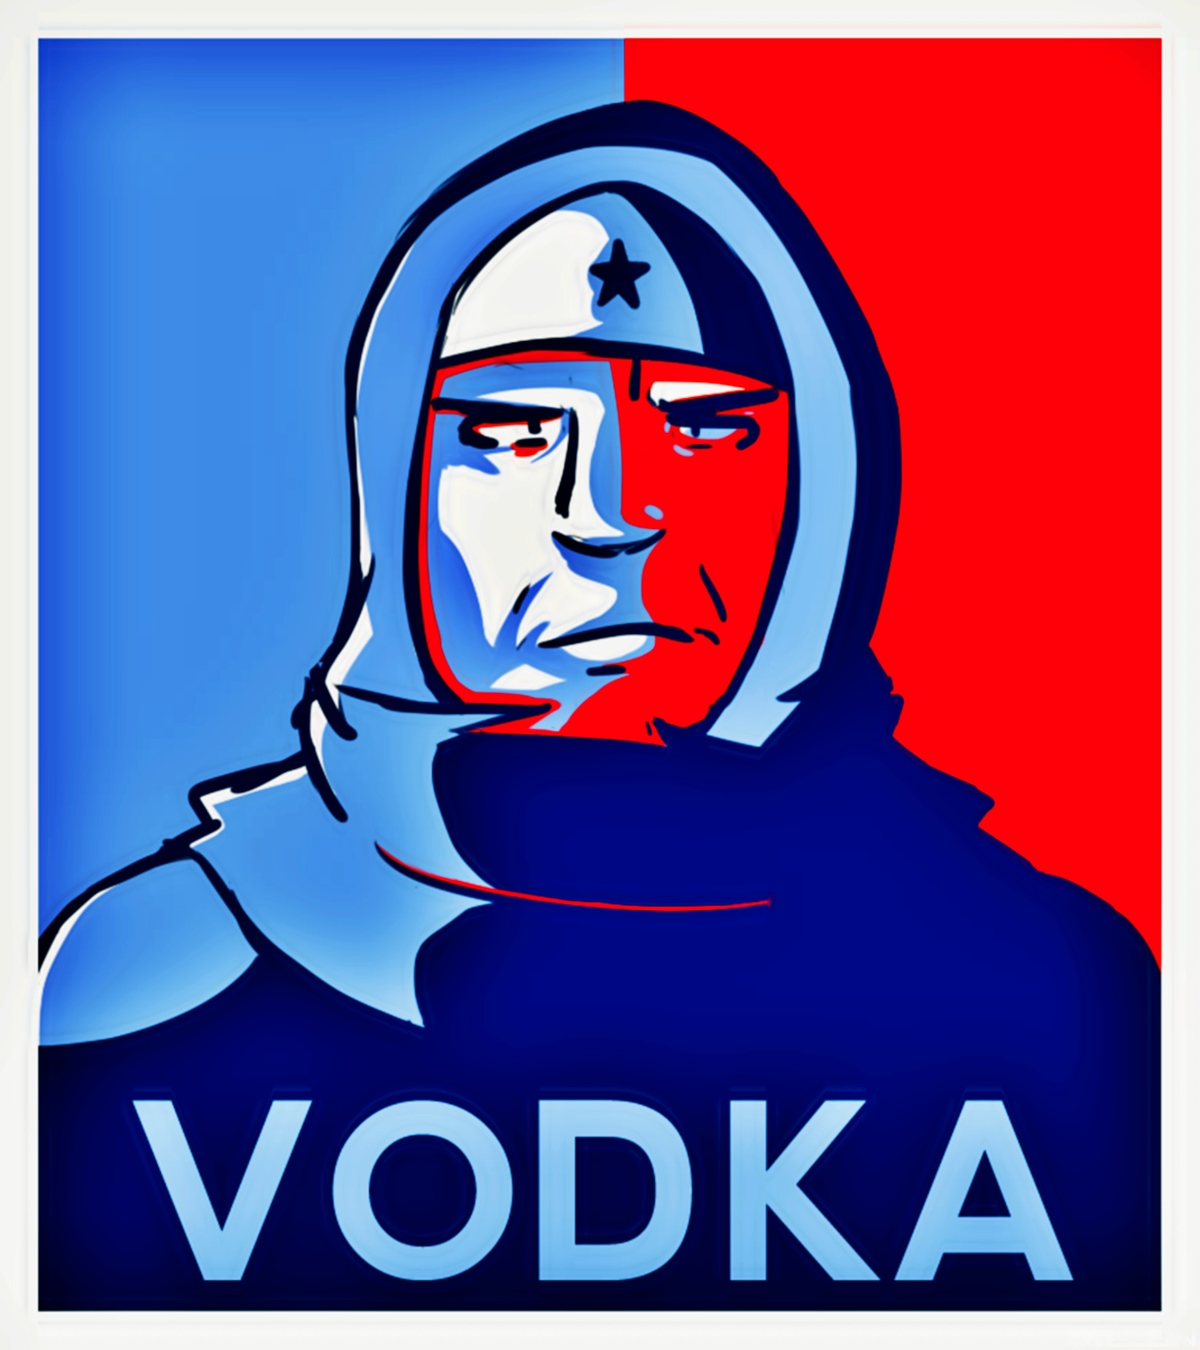 00 Russian Vodka. 08.09.13